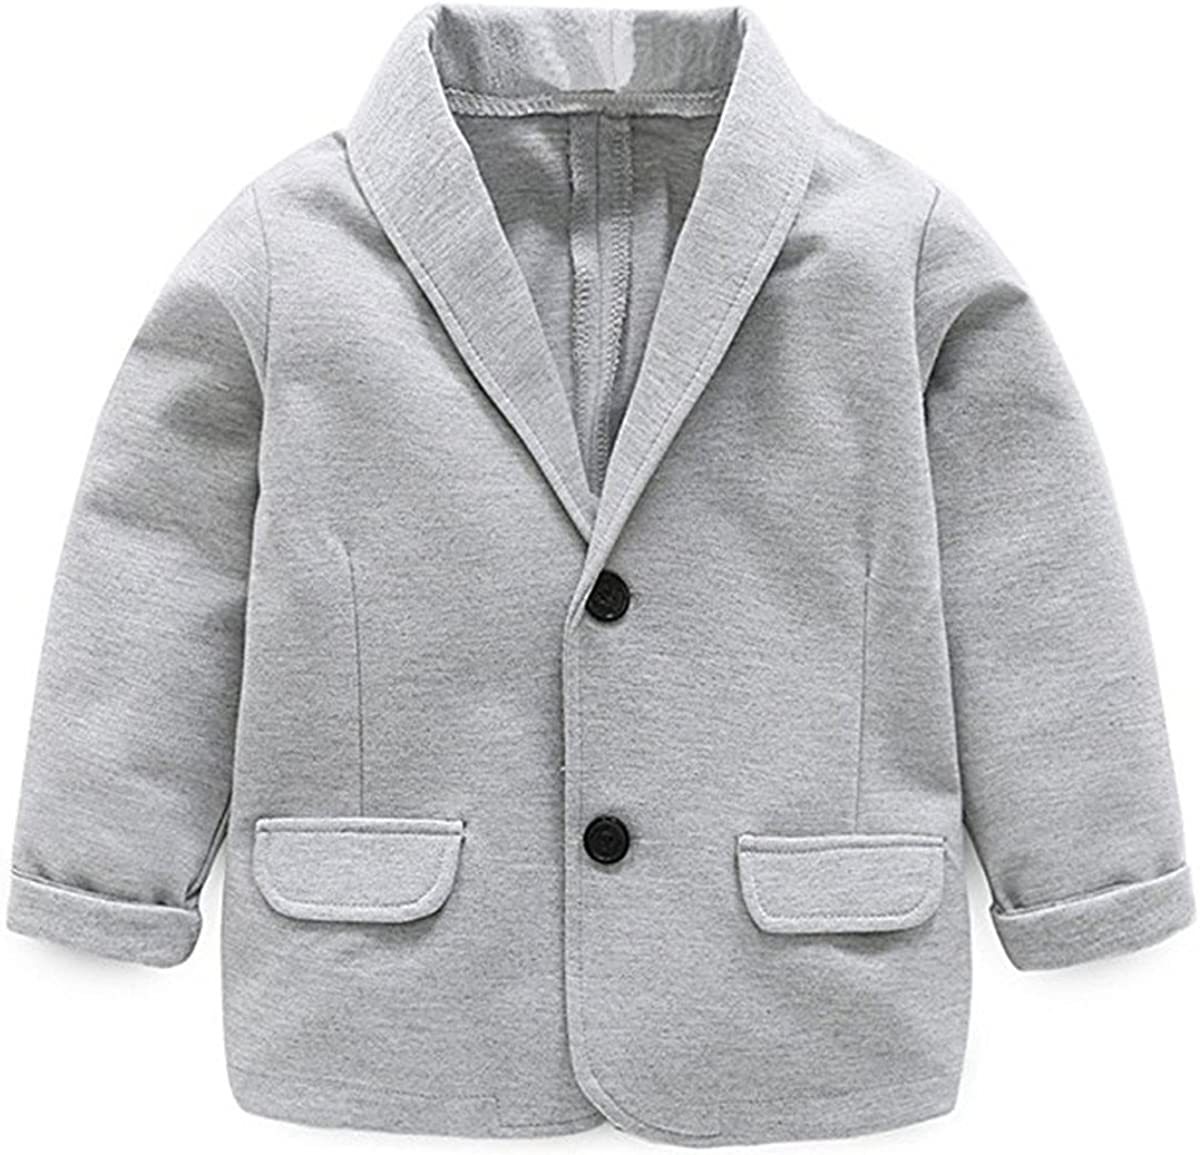 Limited time sale Little Kids Boys Girls Casual Coat Blazers Indefinitely Fashion Suit Jackets